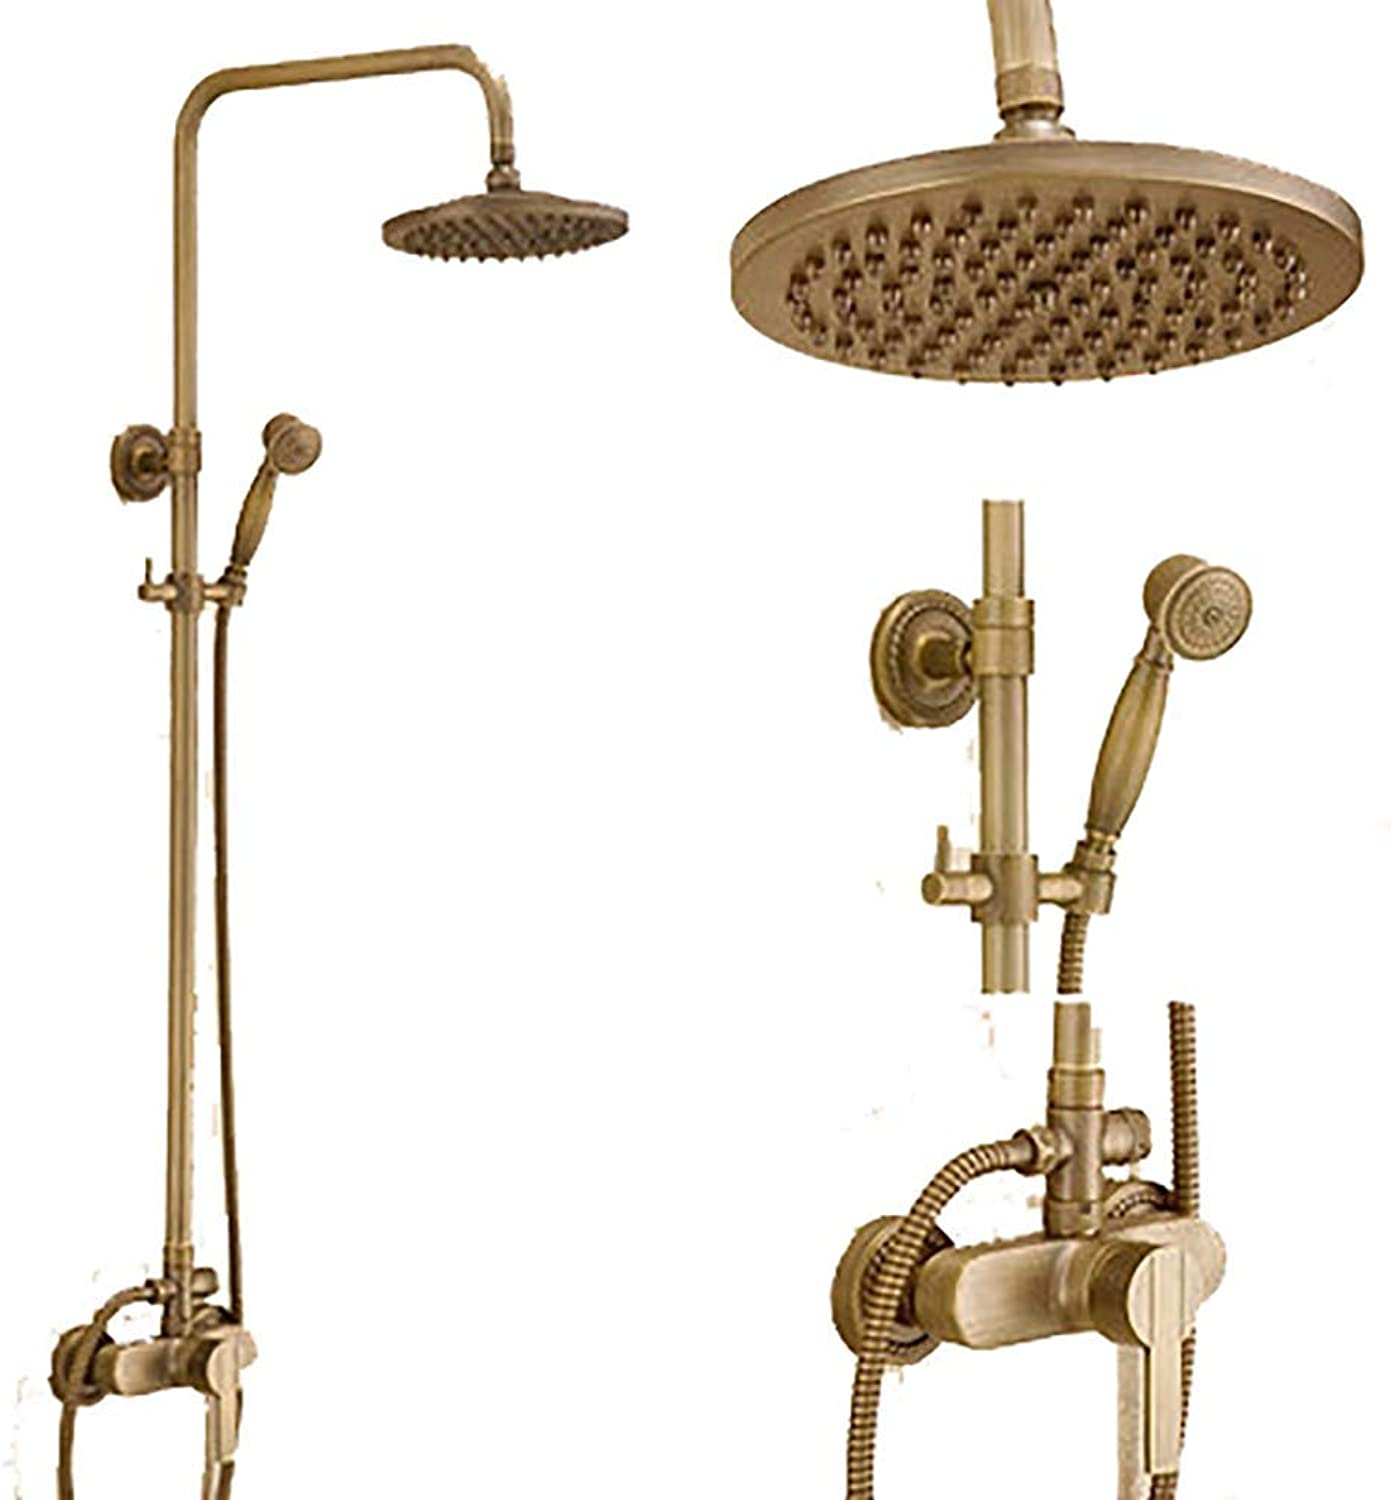 HAIHANGYUANDA Bath European Antique Shower Set, Copper Material, Family hotel Wall-mounted Cold hot Shower Faucet, Free Lifting 3-hole Inssizetion (color   Brass)